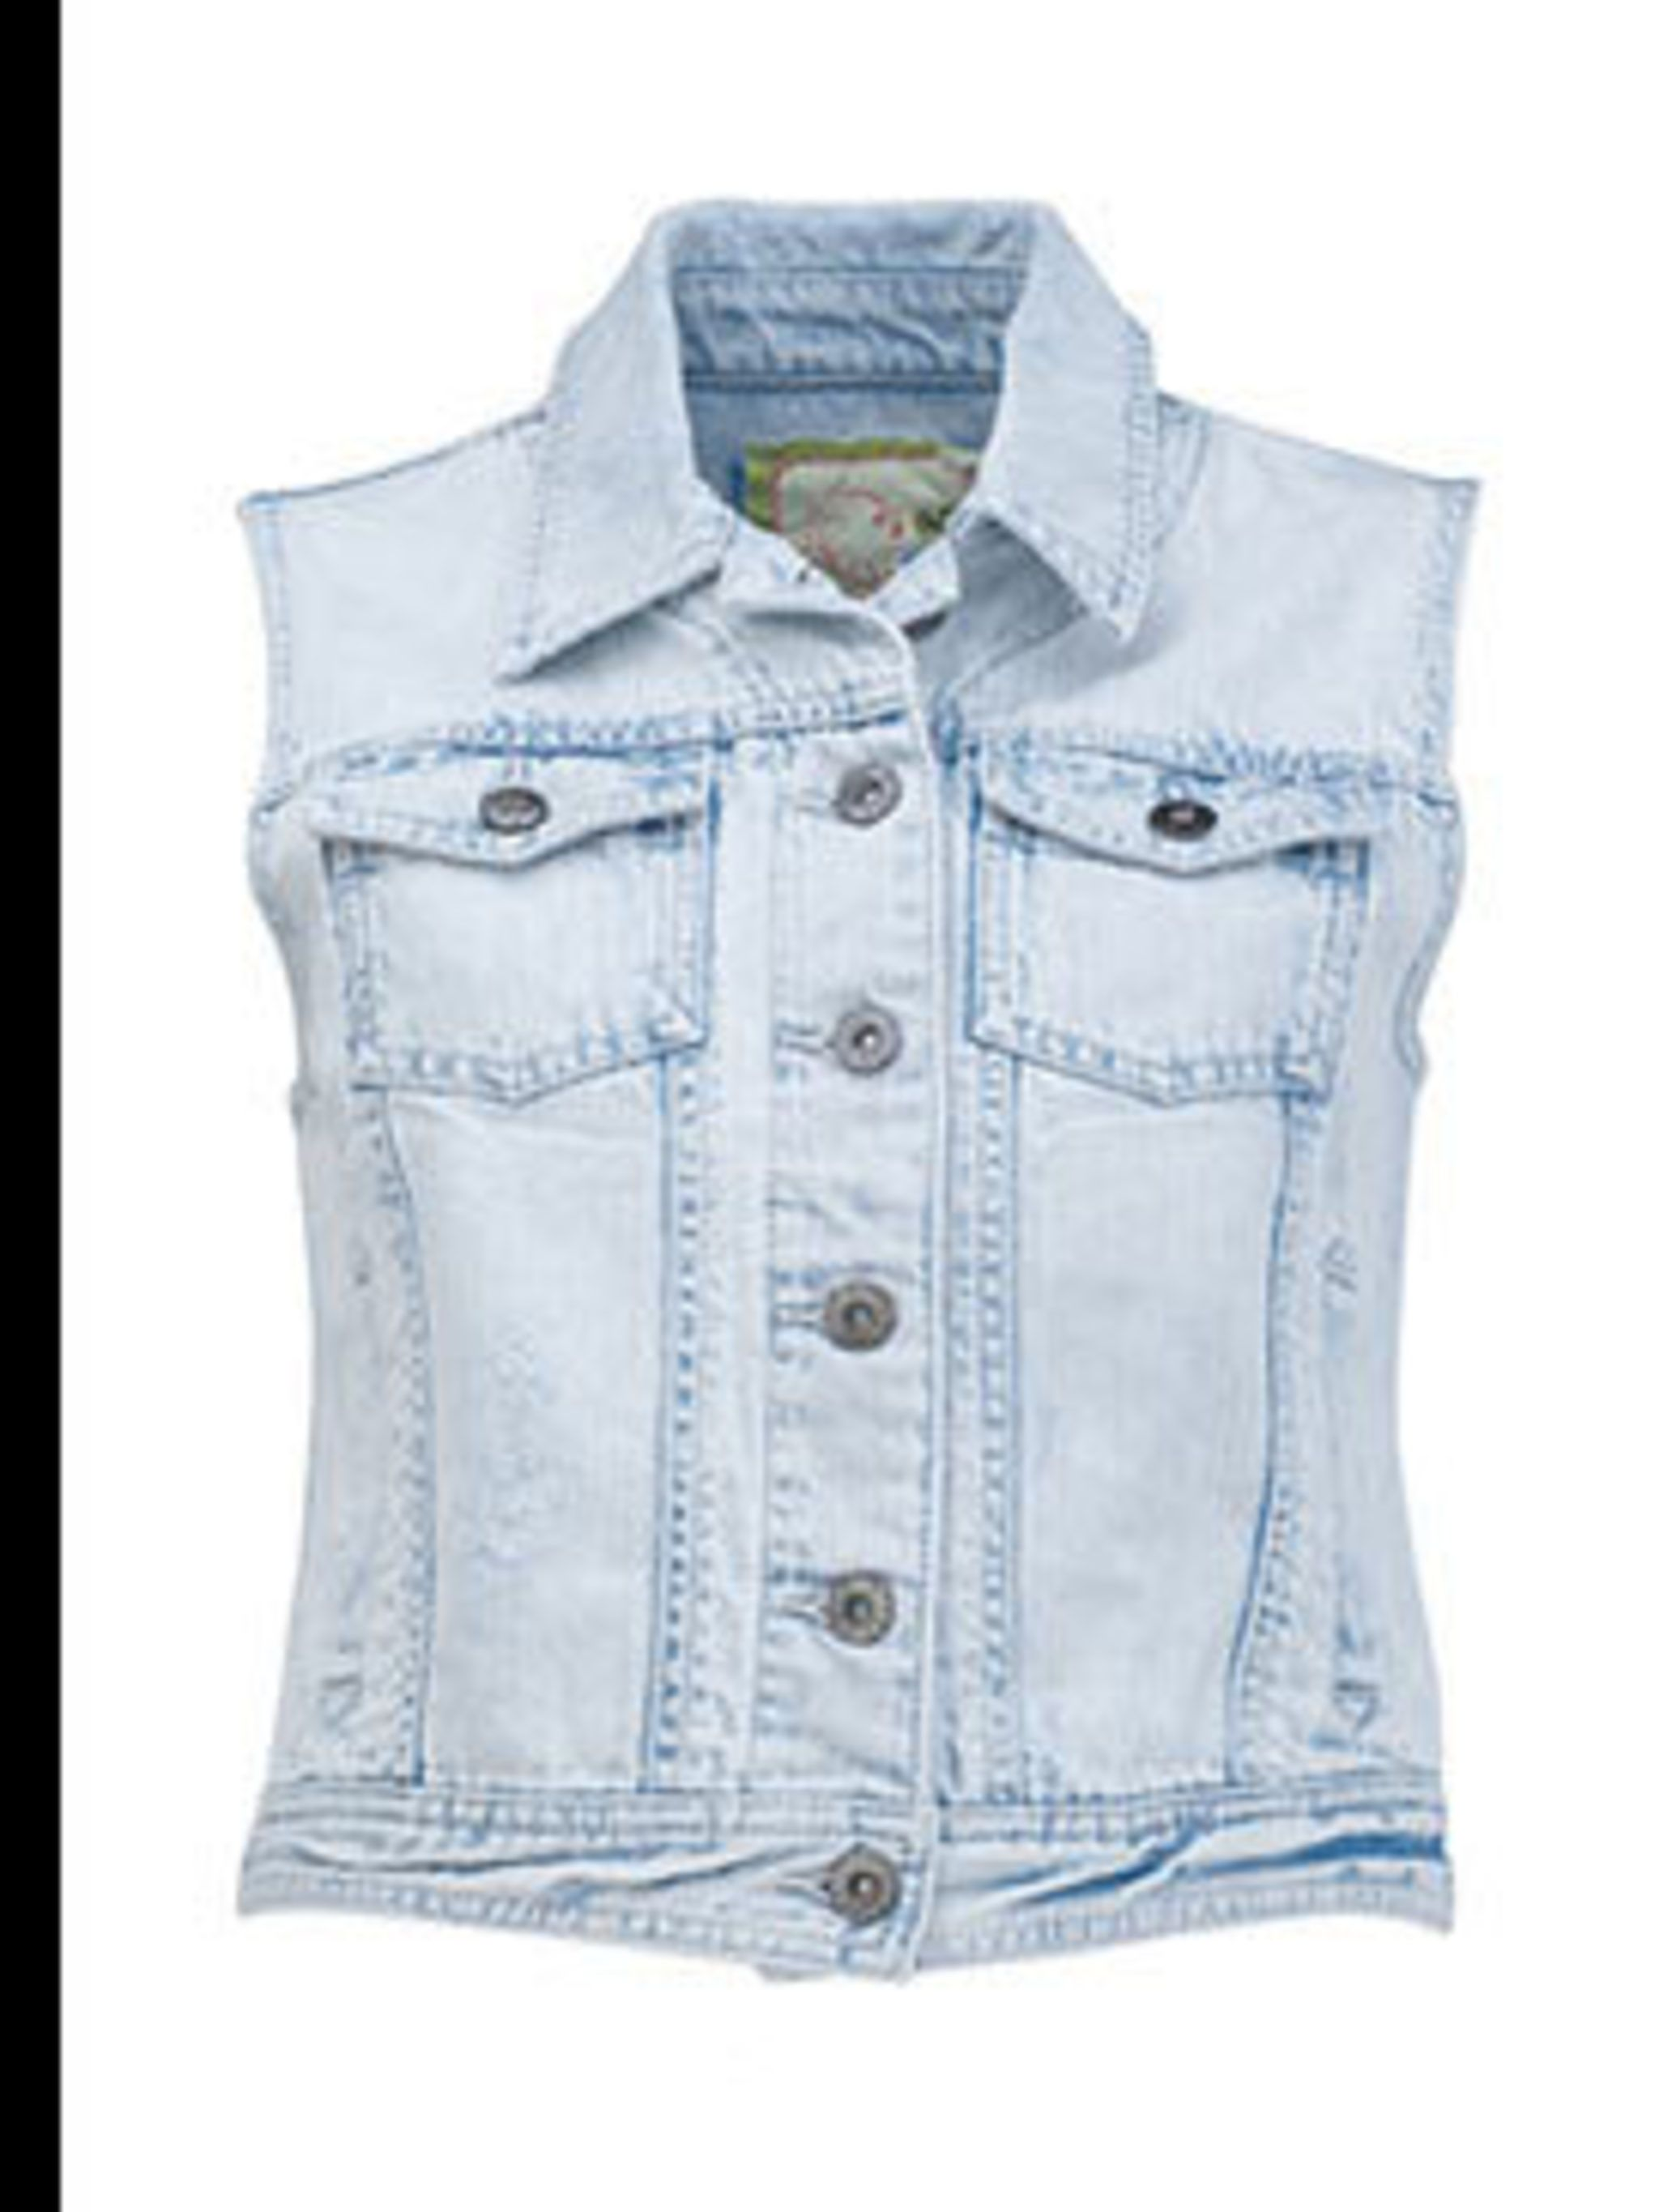 "<p>Waistcoat, £29.99 by <a href=""http://xml.riverisland.com/flash/content.php"">River Island</a></p>"